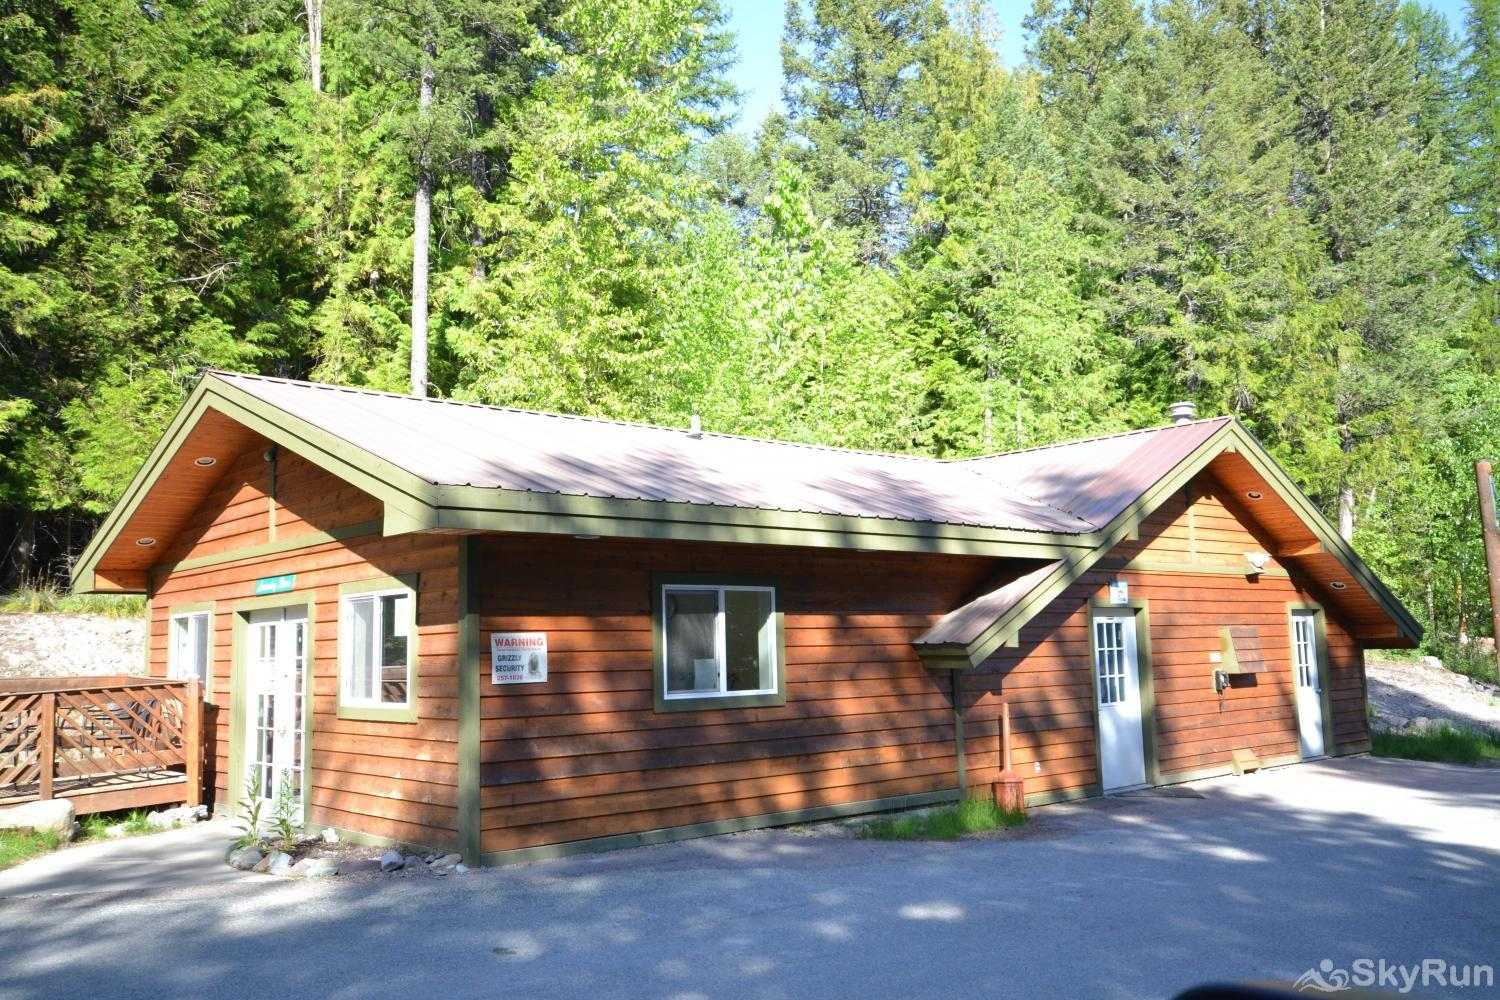 Ptarmigan Village 86 Laundry facility (just a few feet from the parking lot)